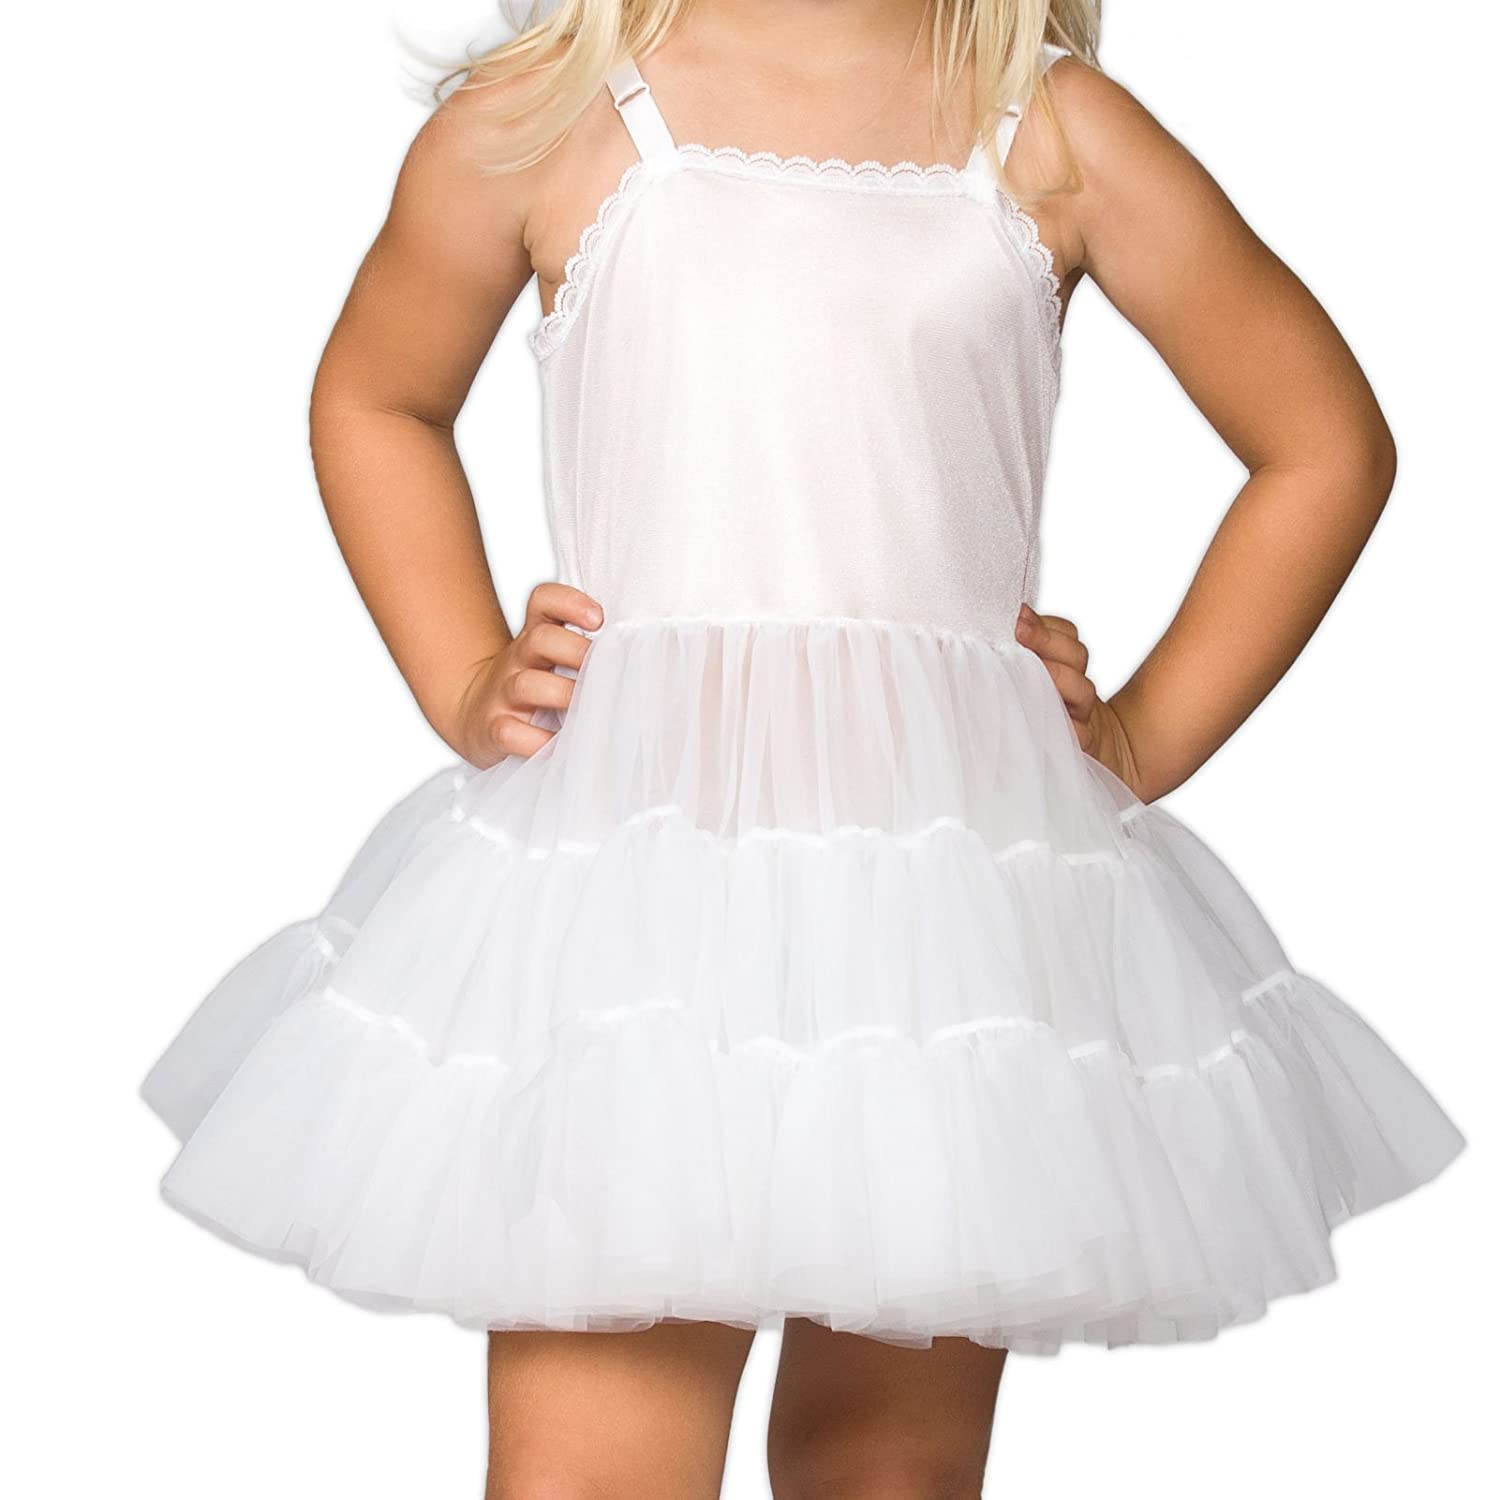 I.C. Collections Little Girls White Bouffant Slip Petticoat - Extra Full, 4T New ICM 000496-WHB